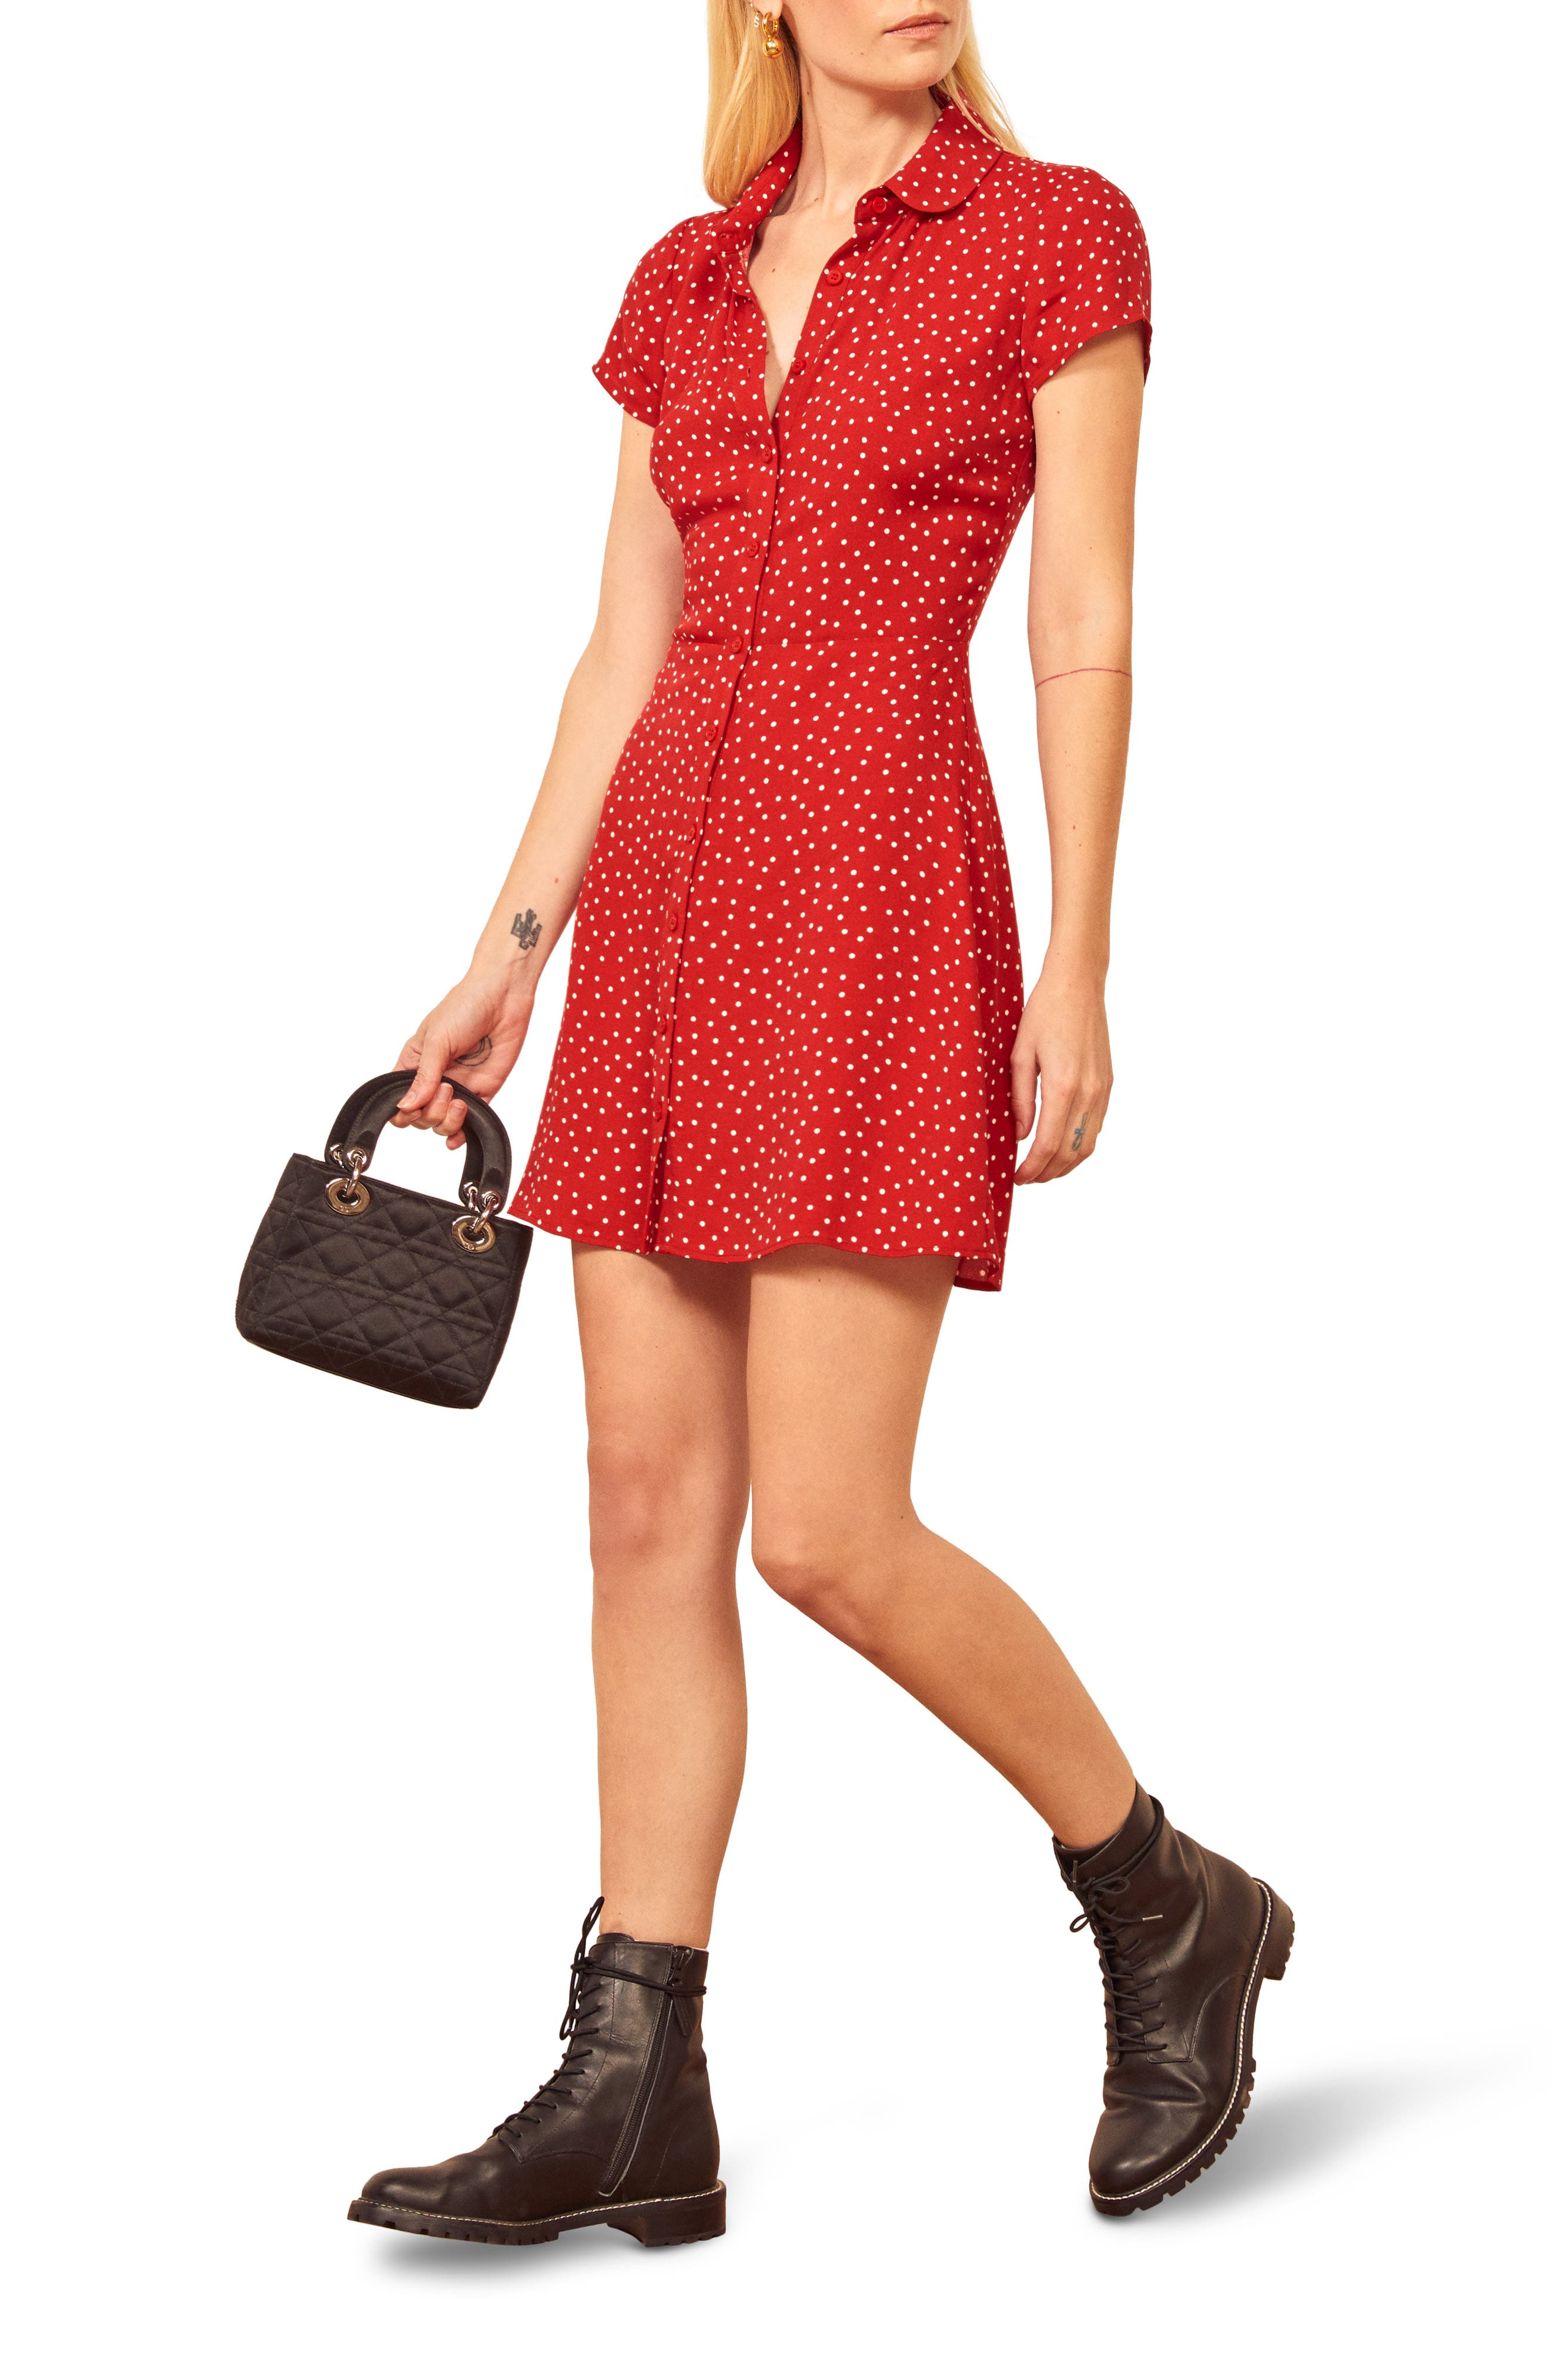 Tiny polka dots pepper a sweet button-front dress updated with a gently rounded spread collar and slim, figure-skimming fit. Style Name: Reformation Sunday Minidress. Style Number: 6036492. Available in stores.